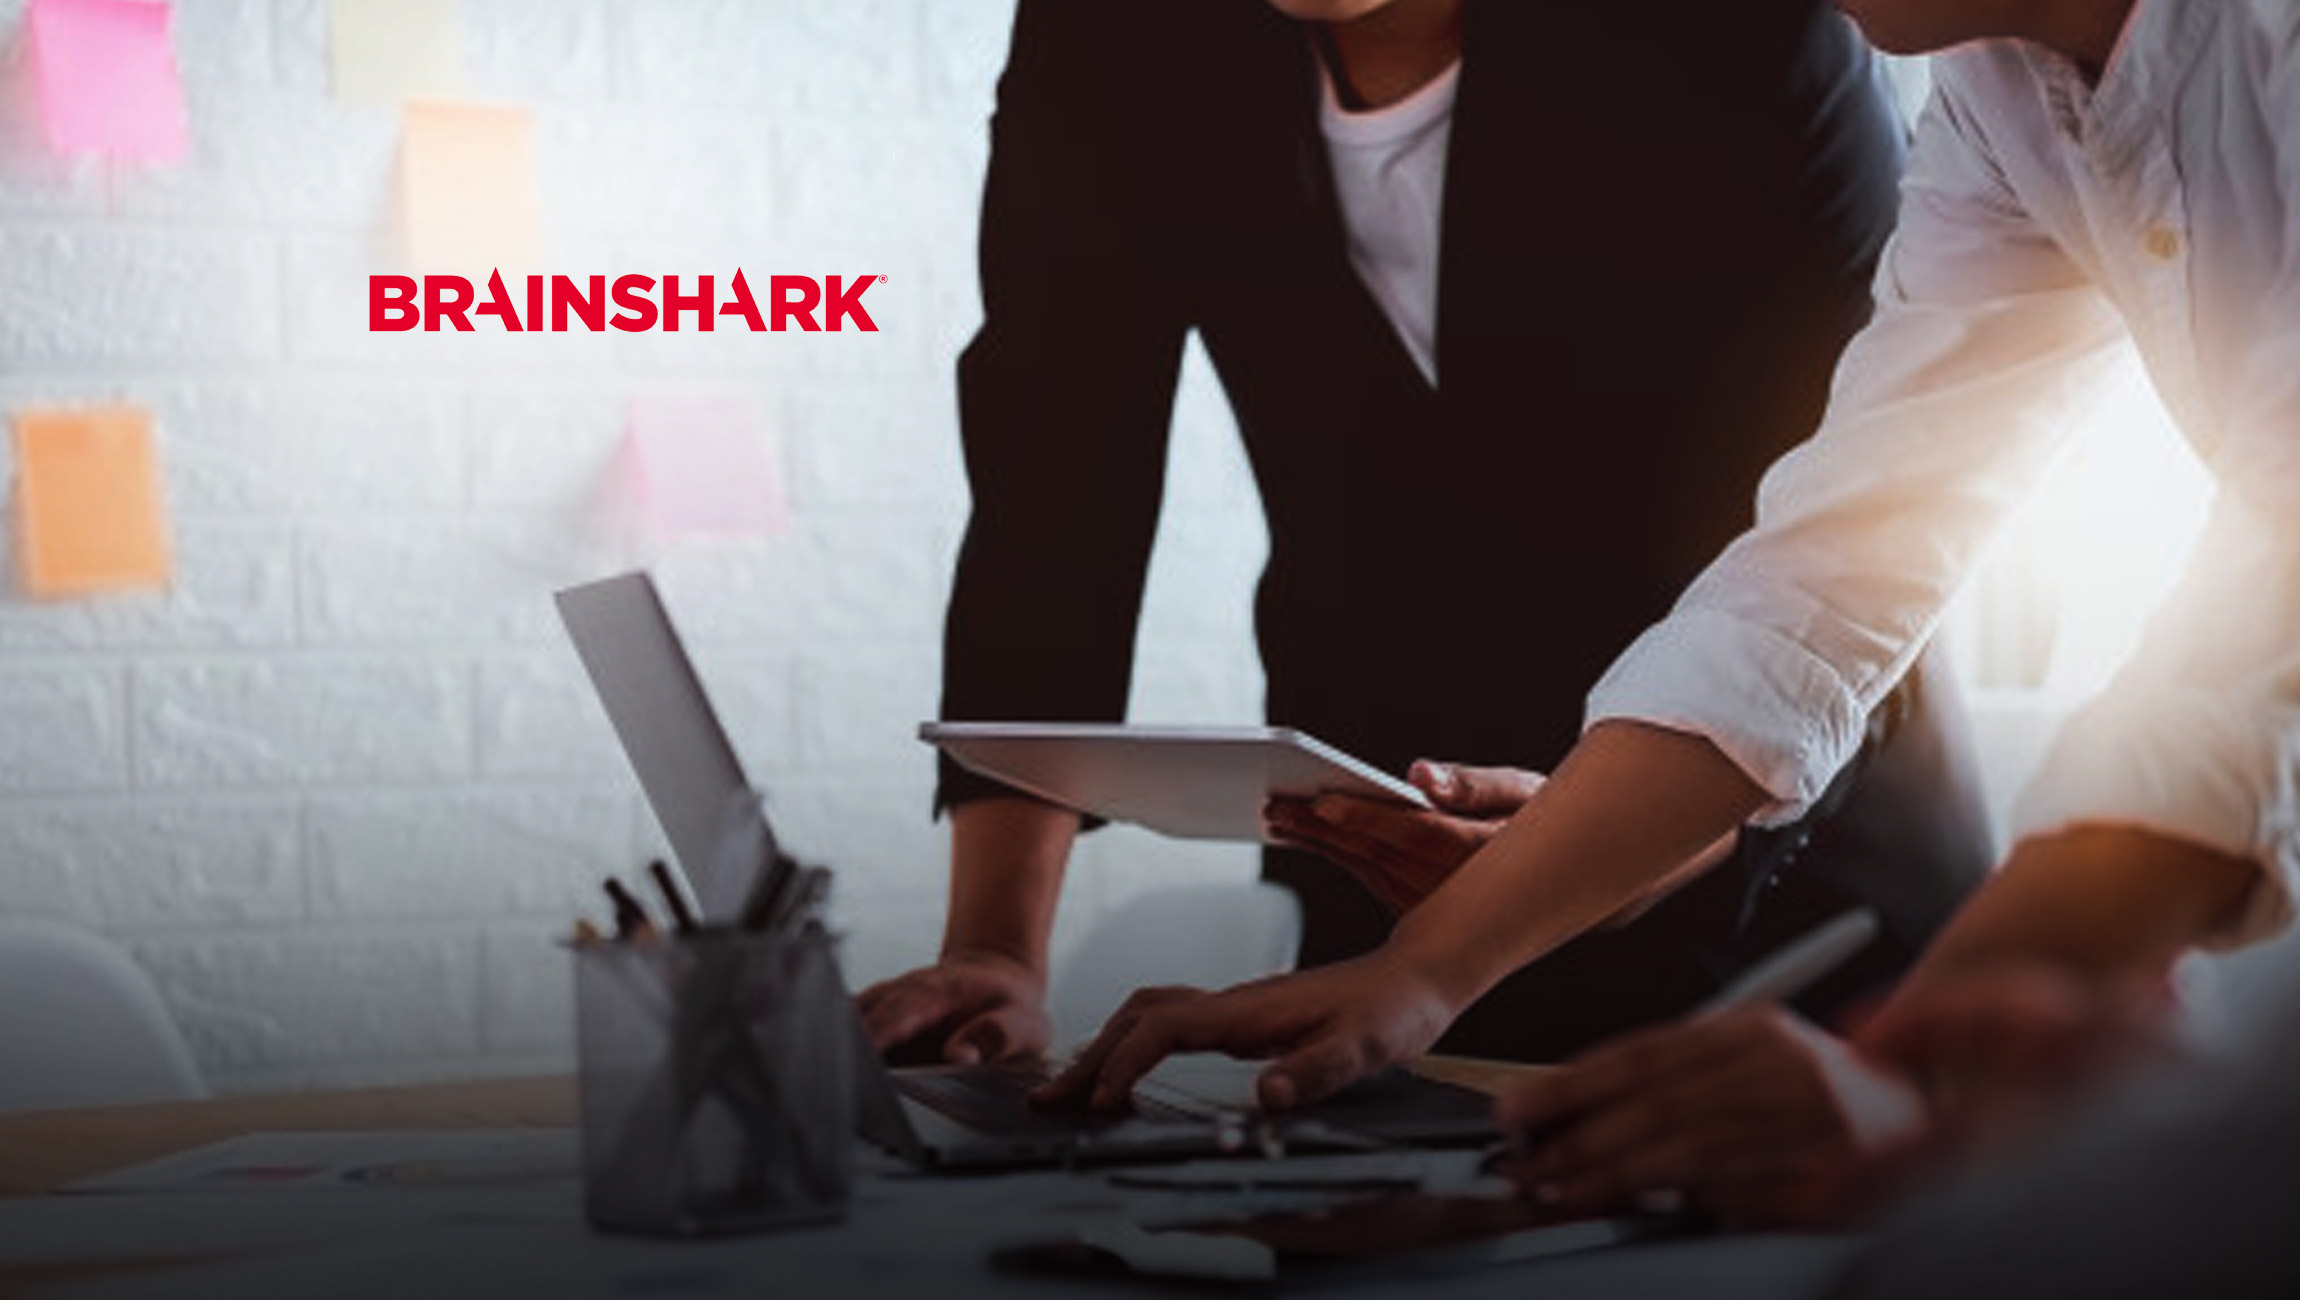 Brainshark Scorecards Give Unprecedented Visibility into the Readiness of Sales and Other Client-Facing Teams